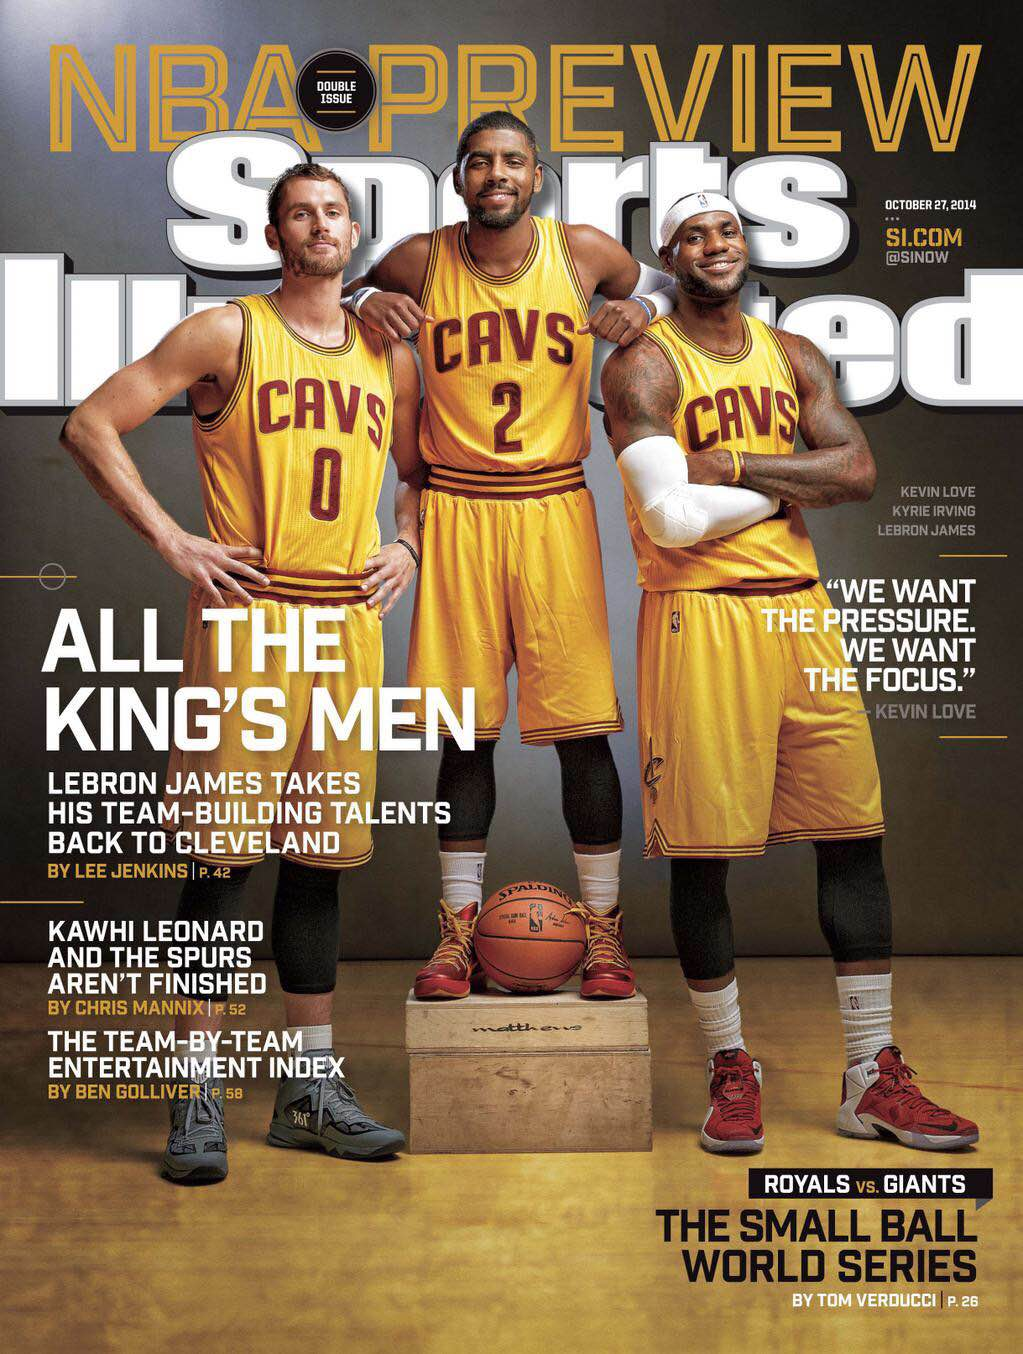 LeBron James, Kyrie Irving and Kevin Love make this week's Sports Illustrated Cover